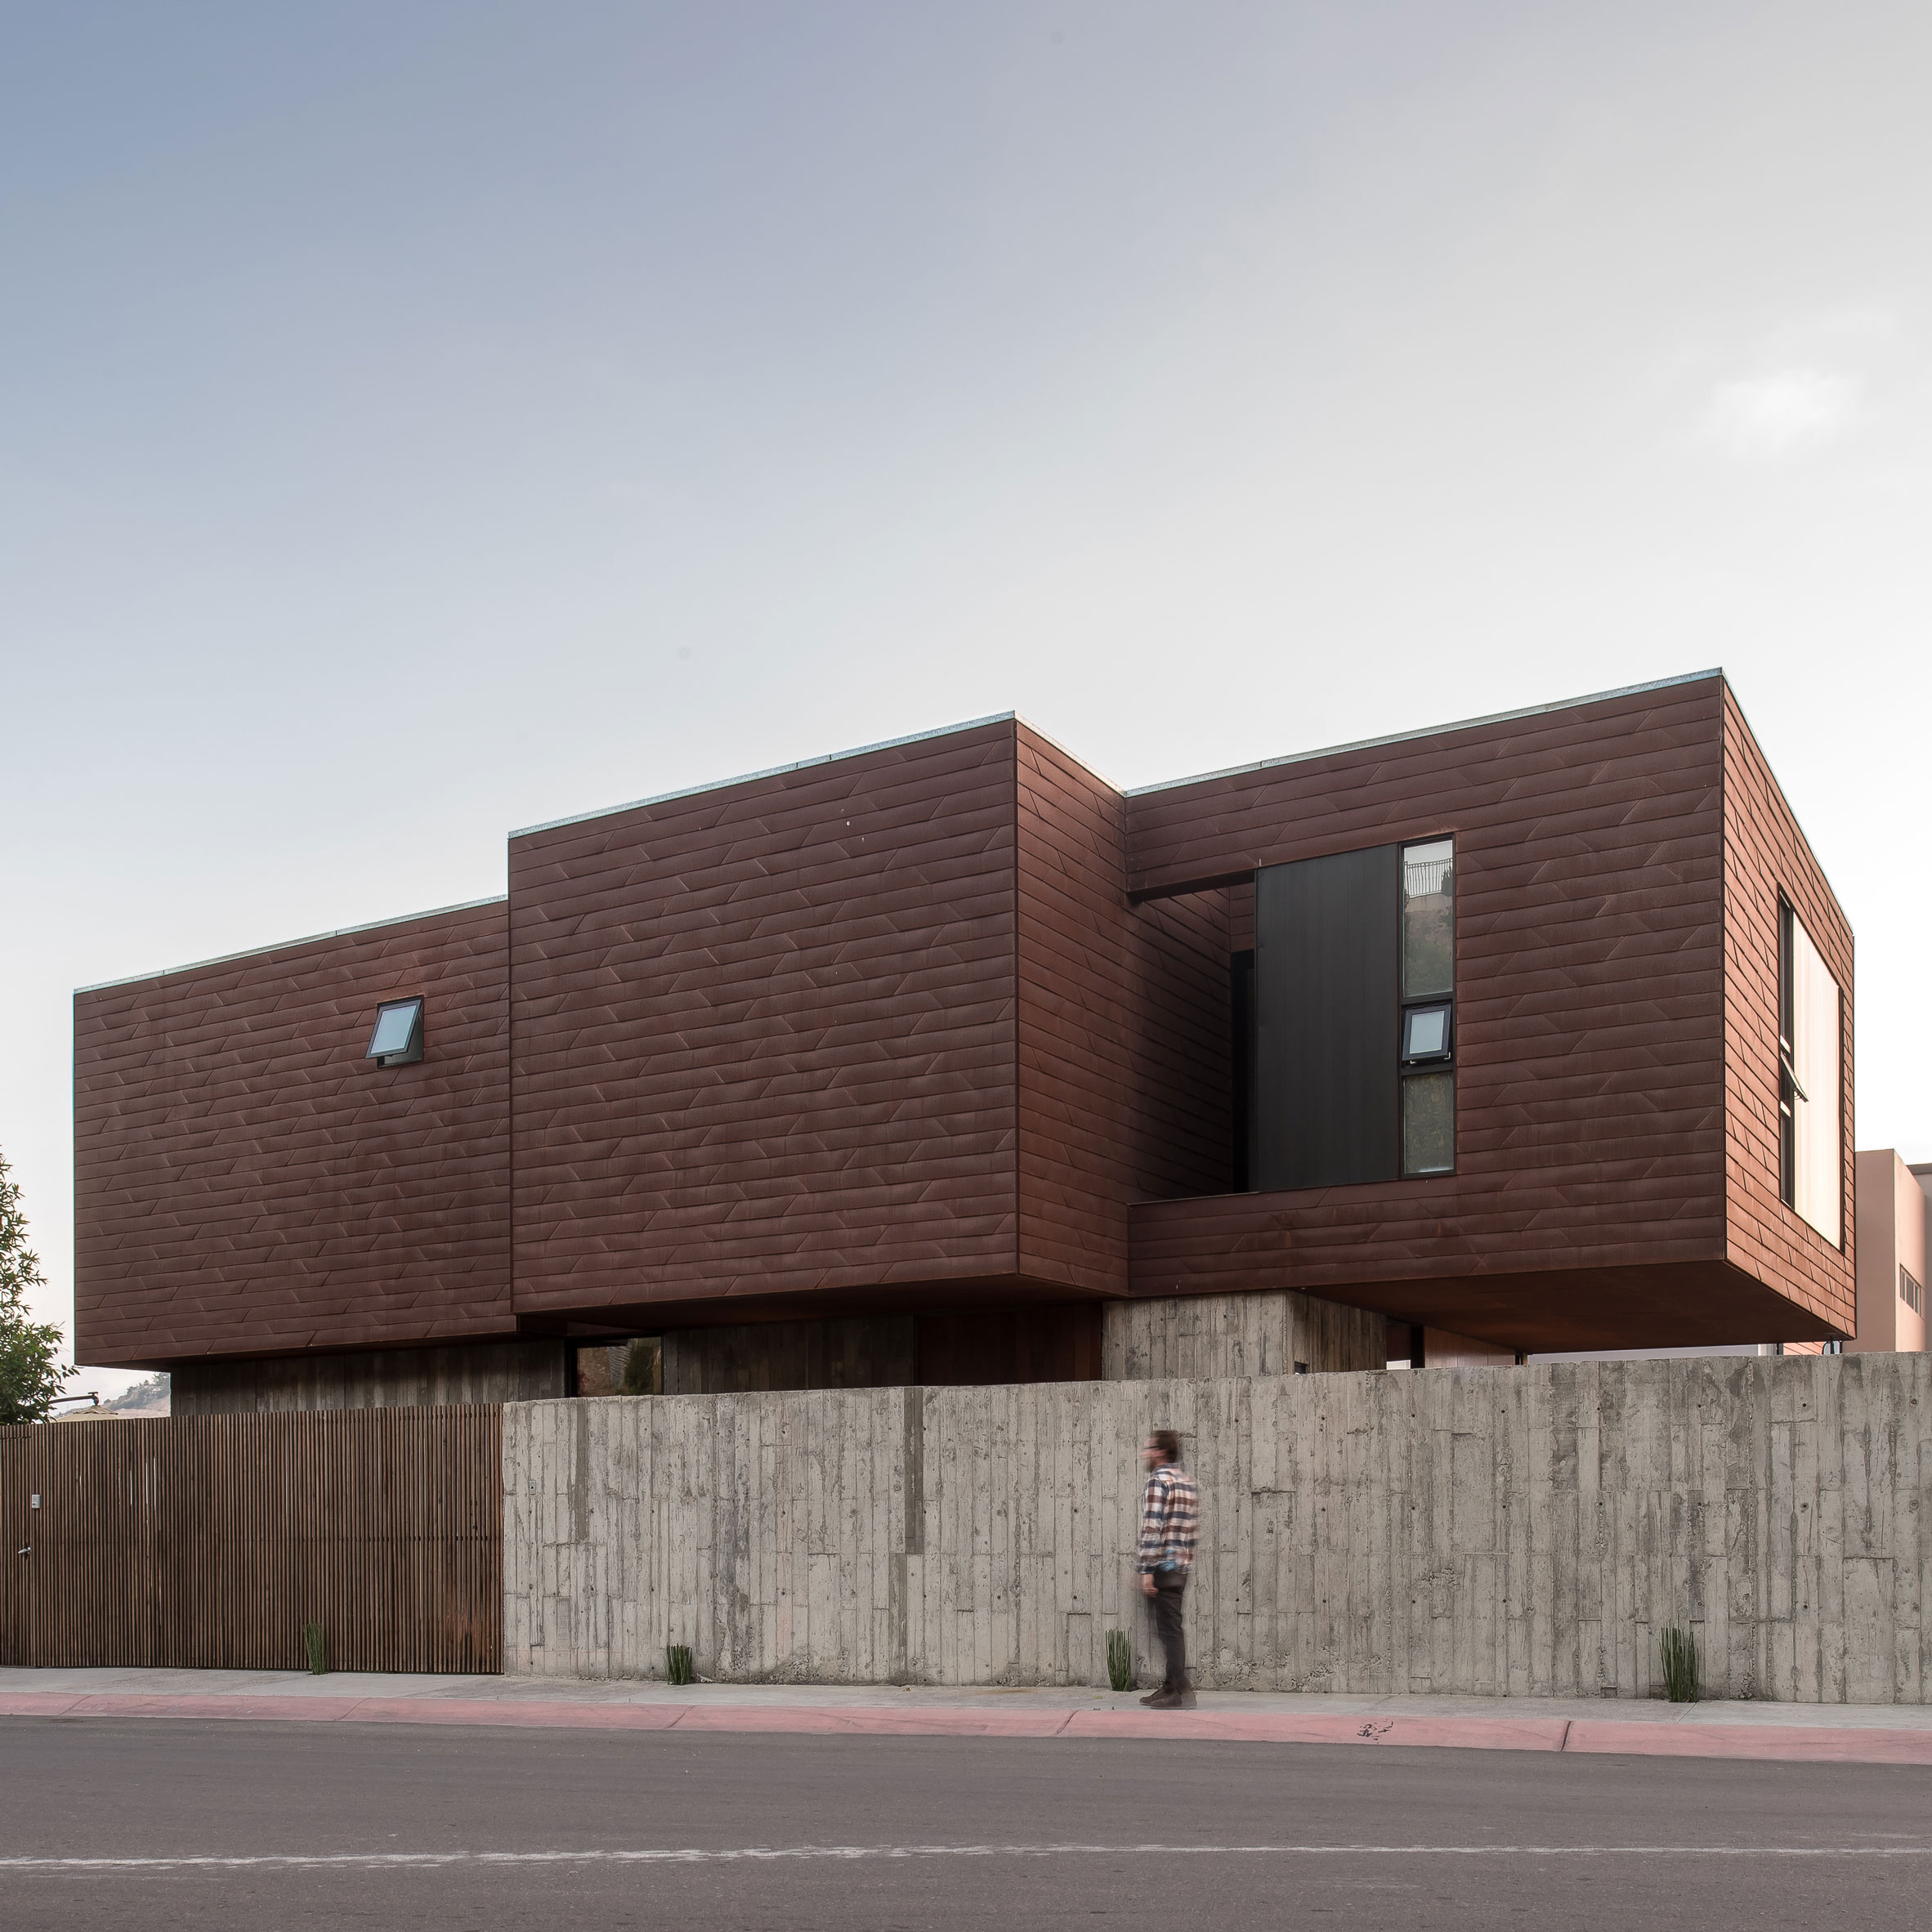 Atelier ARS screens Mexican house behind stone wall and latticework